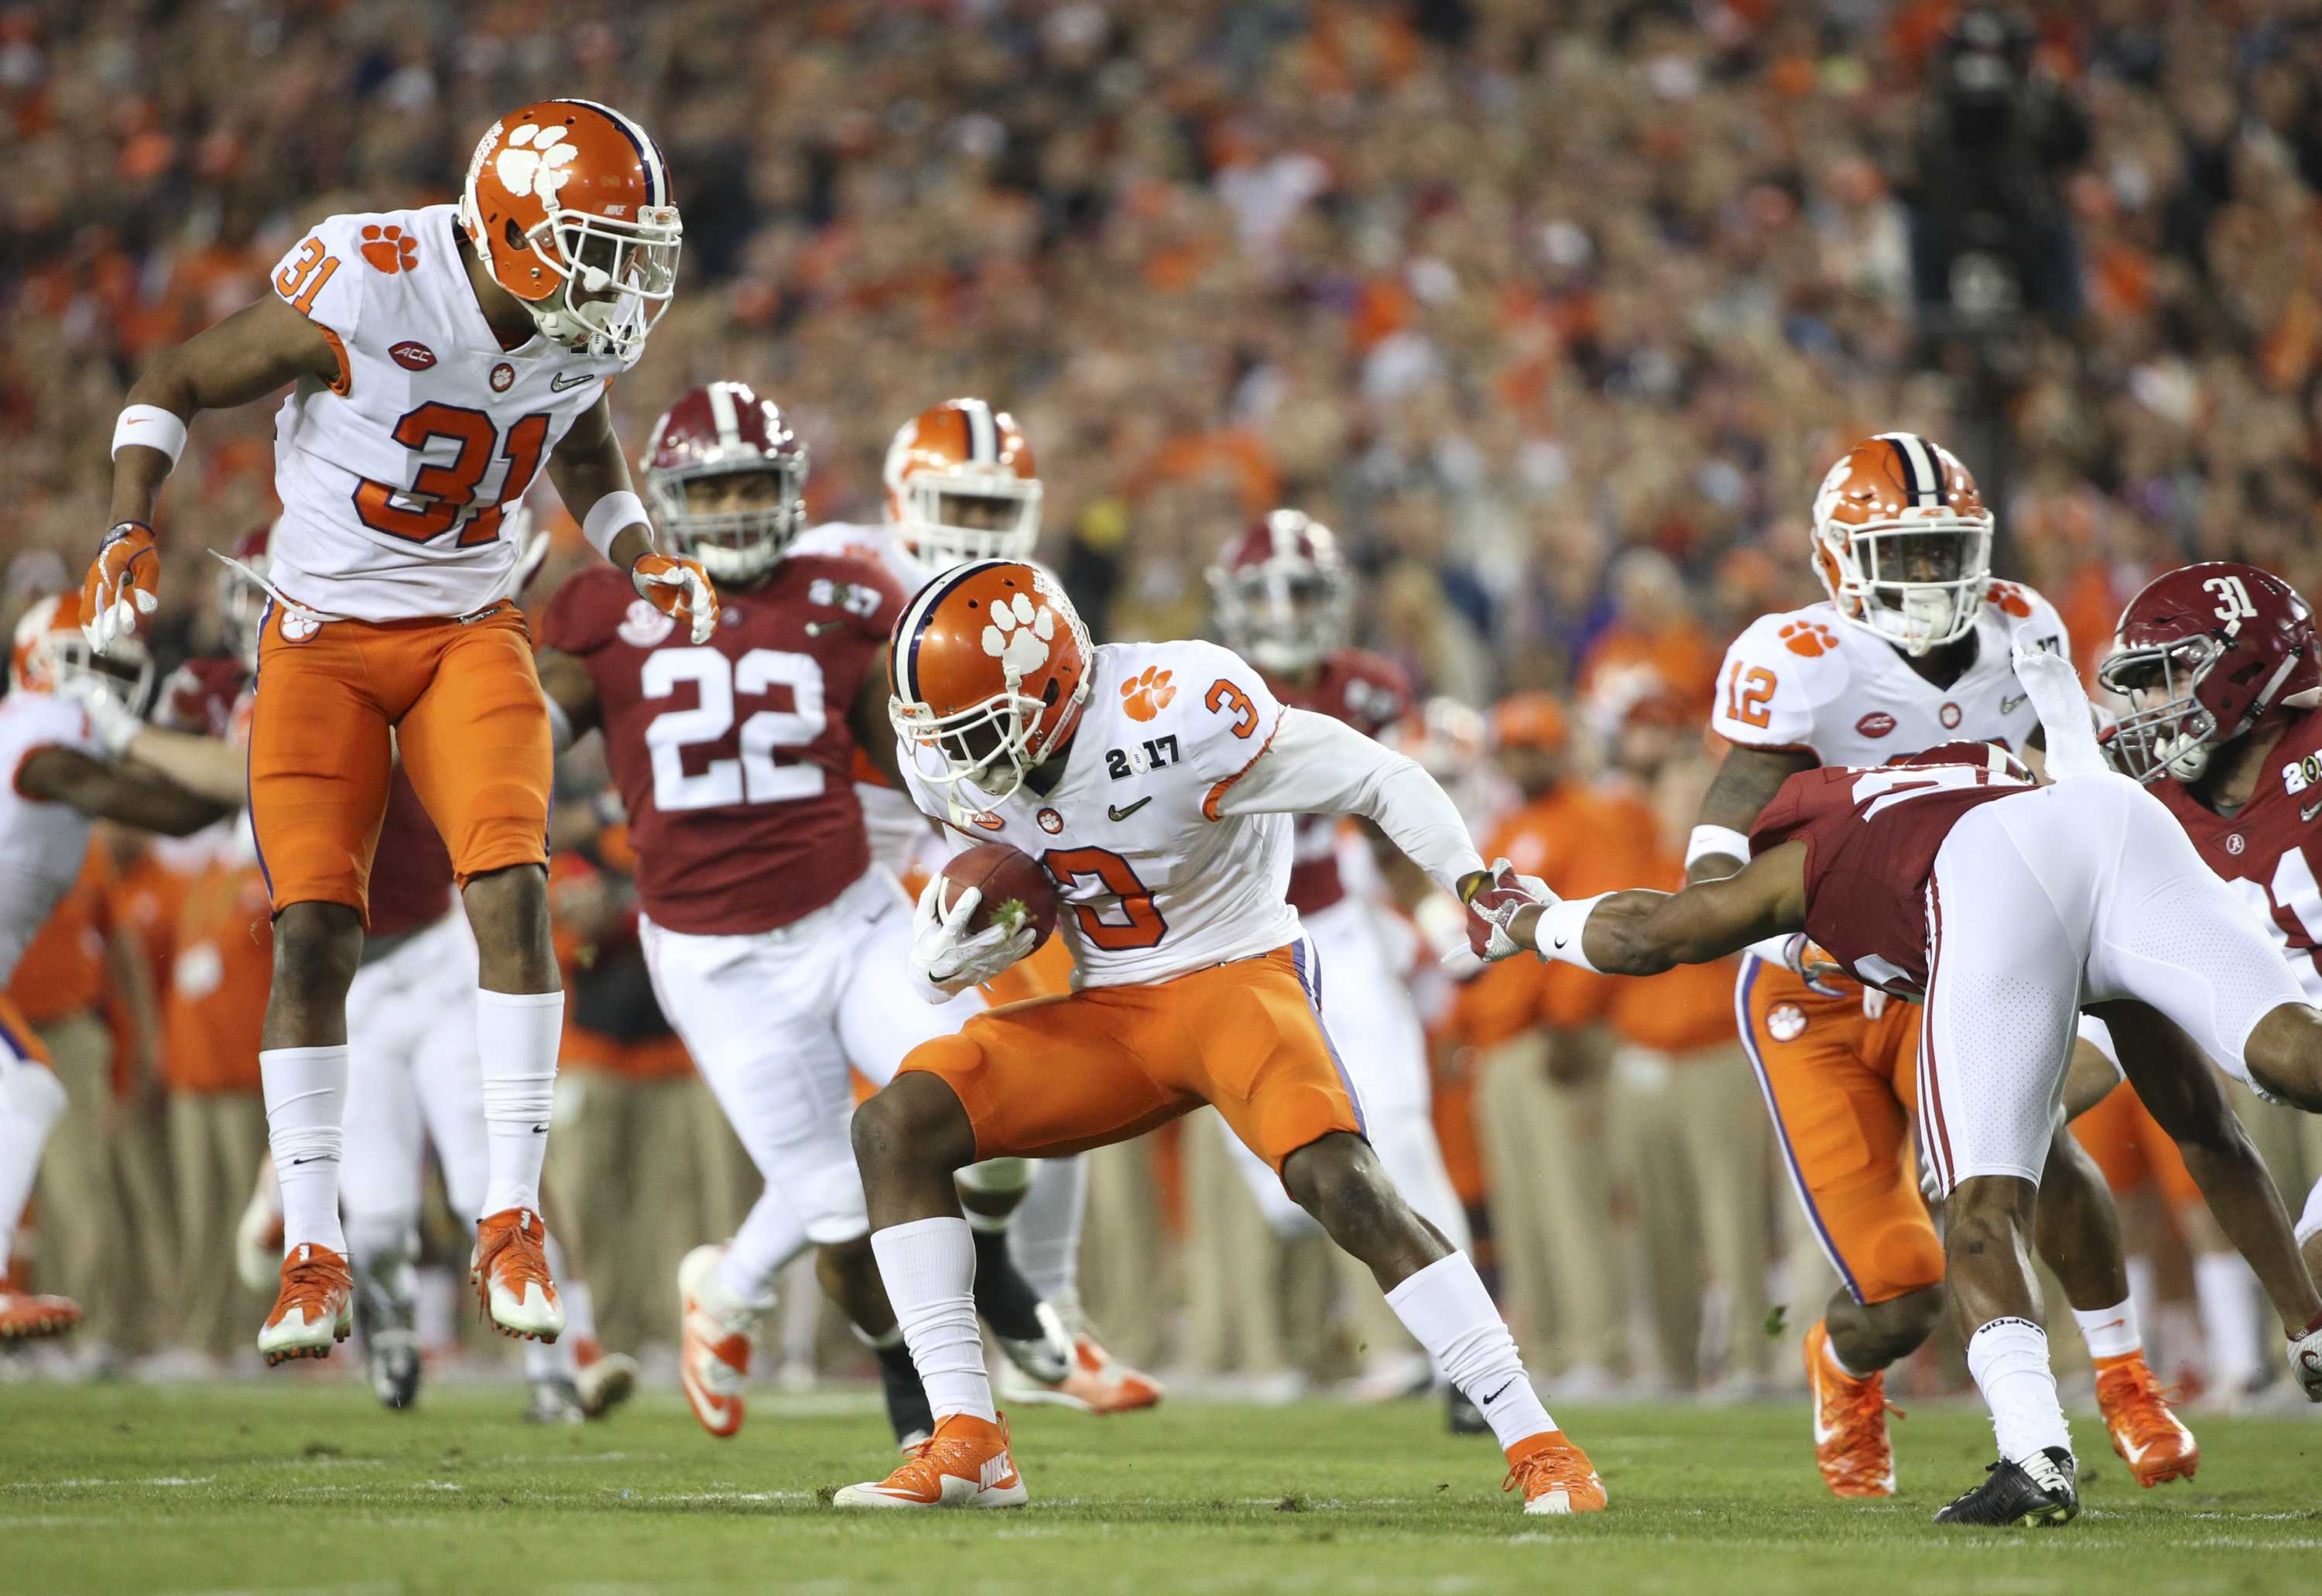 Clemson Tigers wide receiver Artavis Scott (3) runs the ball as Clemson Tigers safety Kyle Cote (32) looks on during the first quarter against the Alabama Crimson Tide during the College Football Playoff National Championship on Monday, Jan. 9, 2017 at Raymond James Stadium in Tampa, Fla. (Loren Elliott/Tampa Bay Times/TNS)